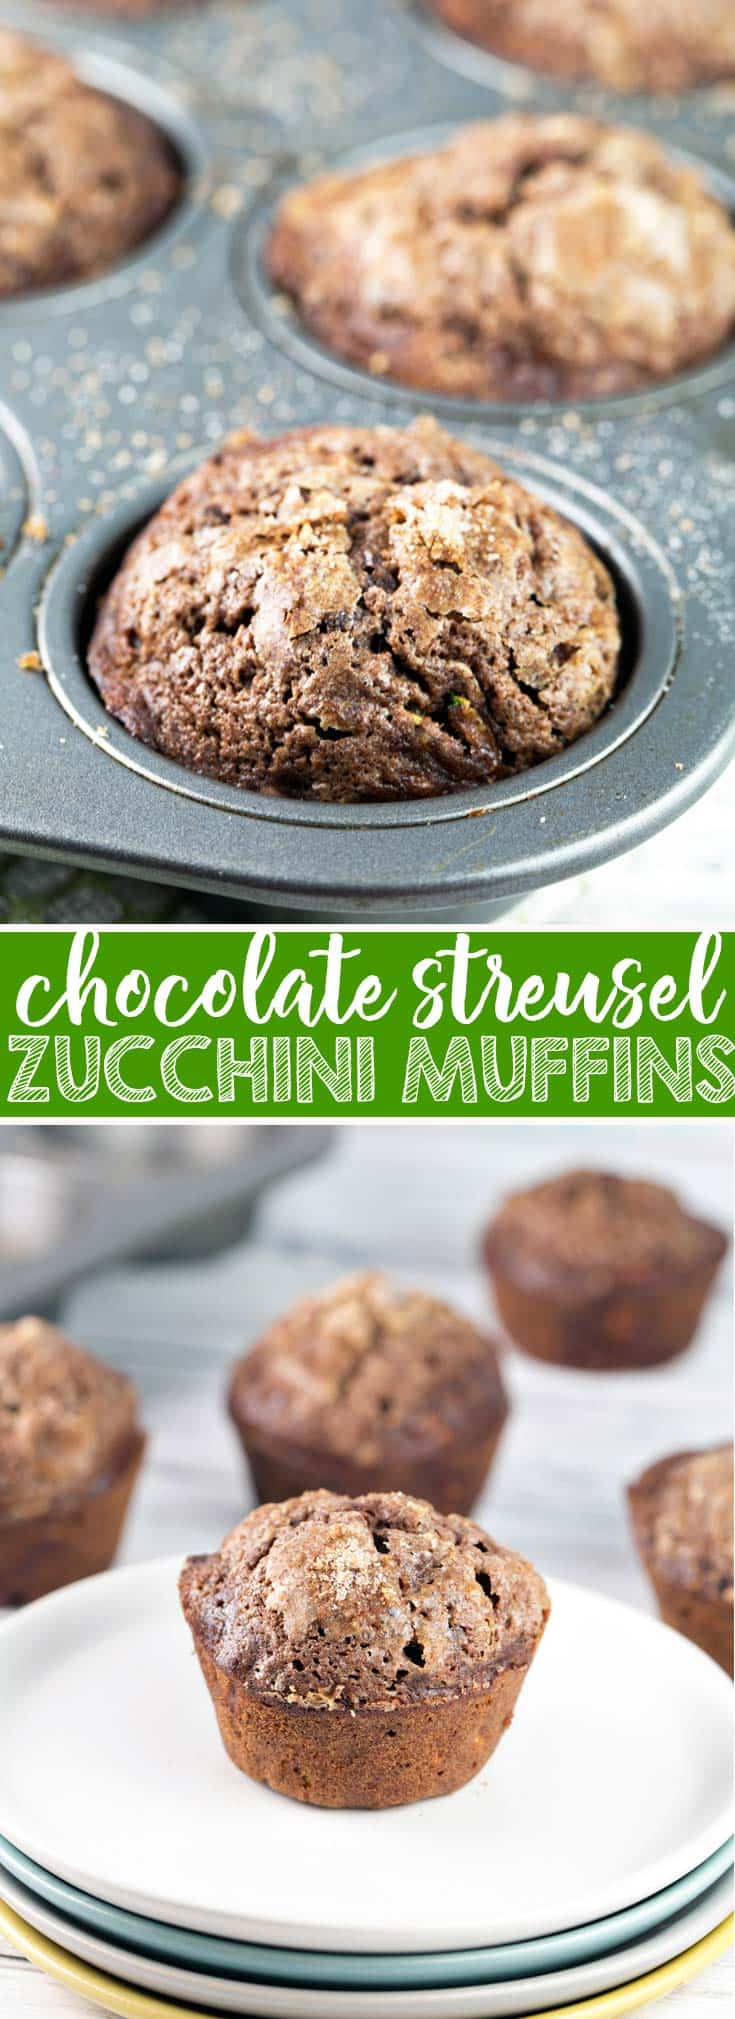 Streusel Topped Chocolate Zucchini Muffins: extra moist with a crackly topping and packed full of zucchini, these muffins are the most delicious way to eat your veggies! Freezer friendly and perfect to share! {Bunsen Burner Bakery}